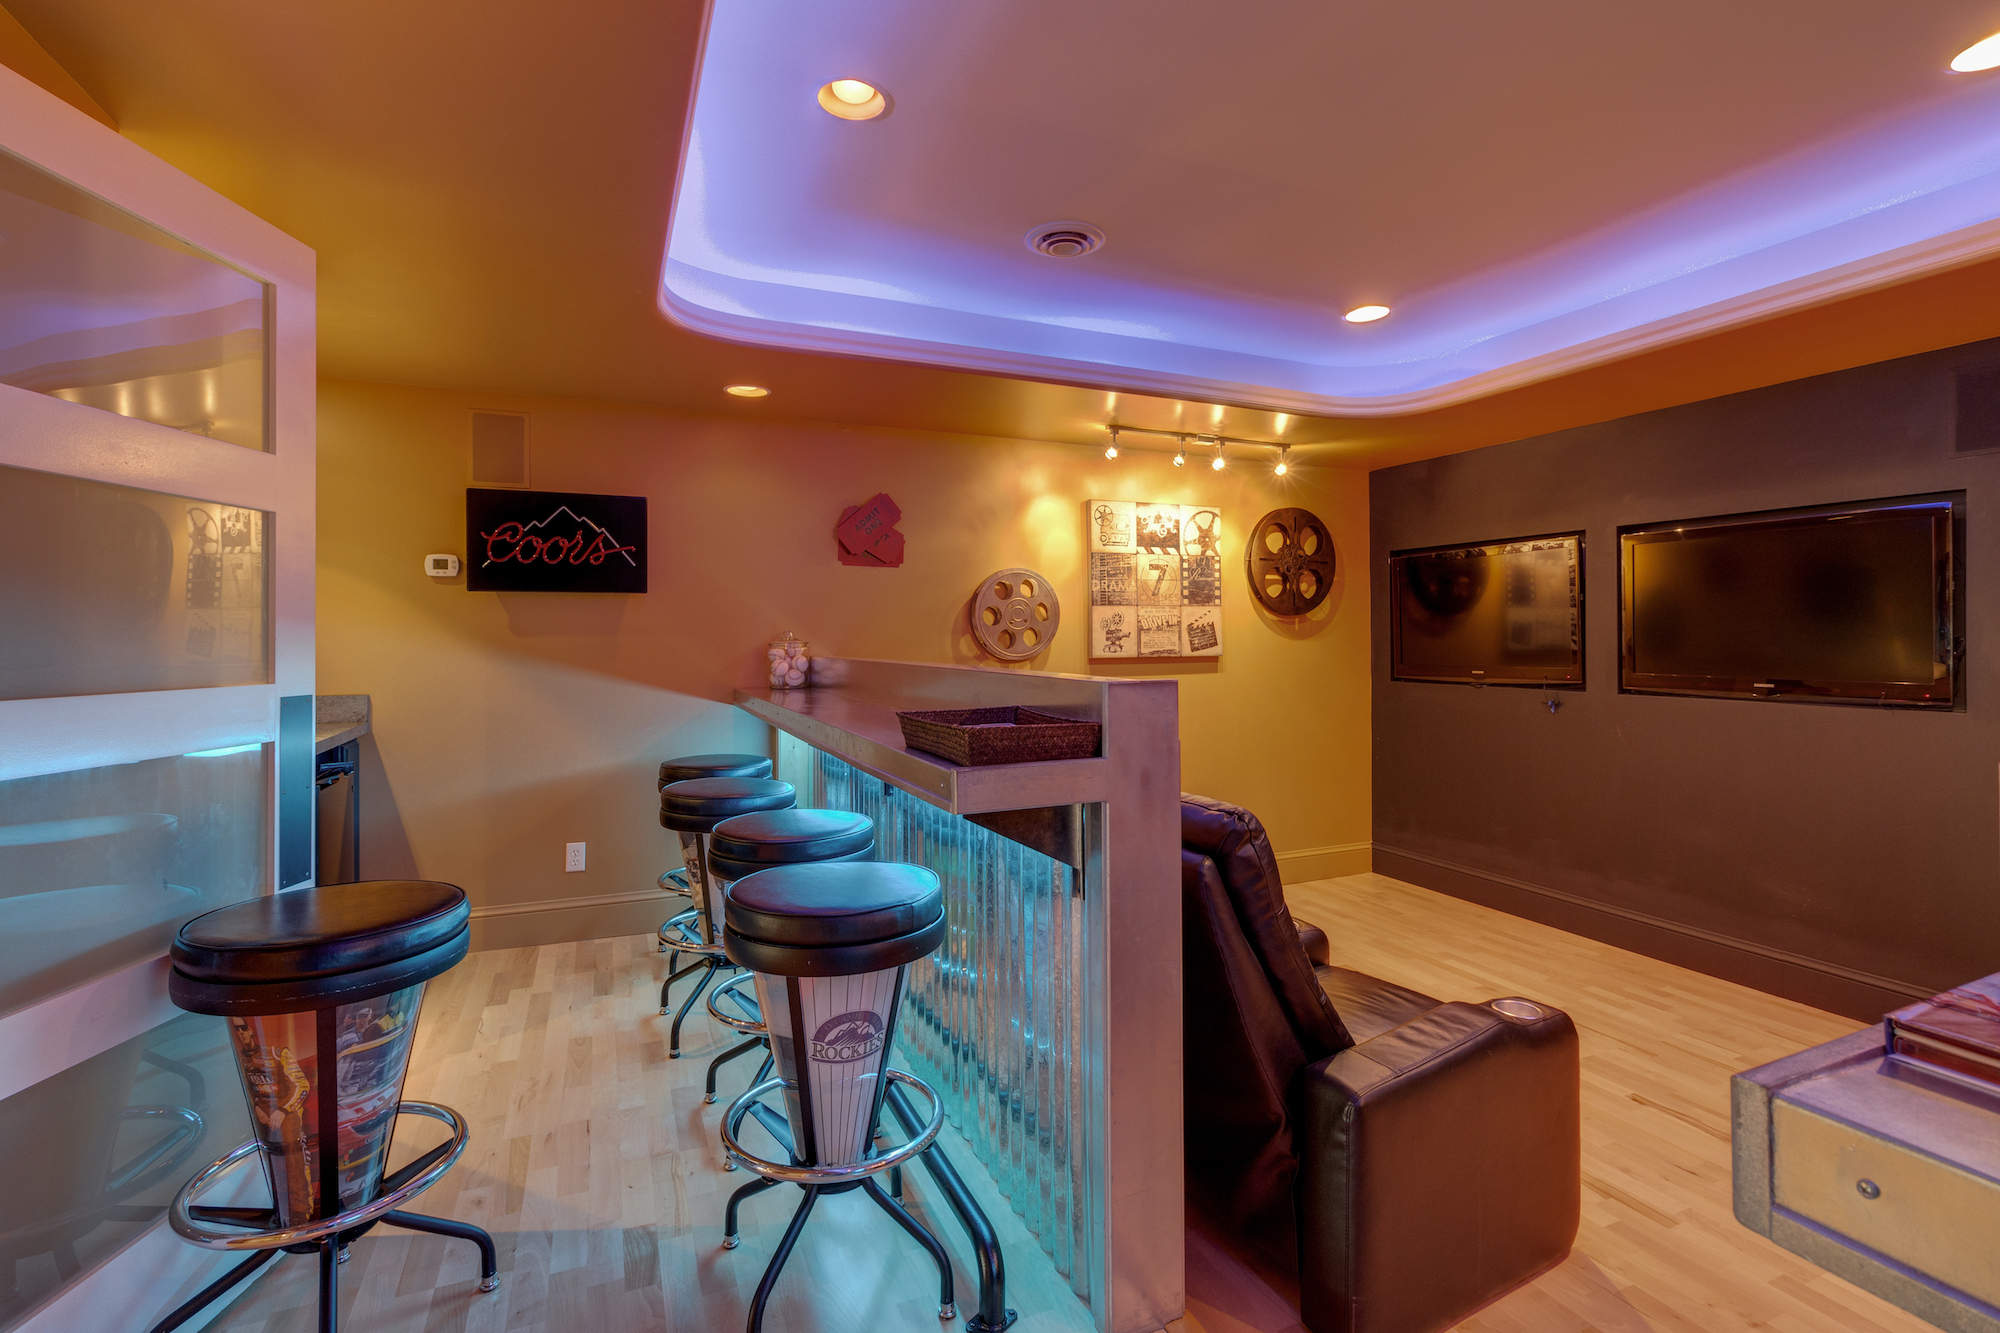 023-Sports bar with 5 tvs and kegerator.jpg